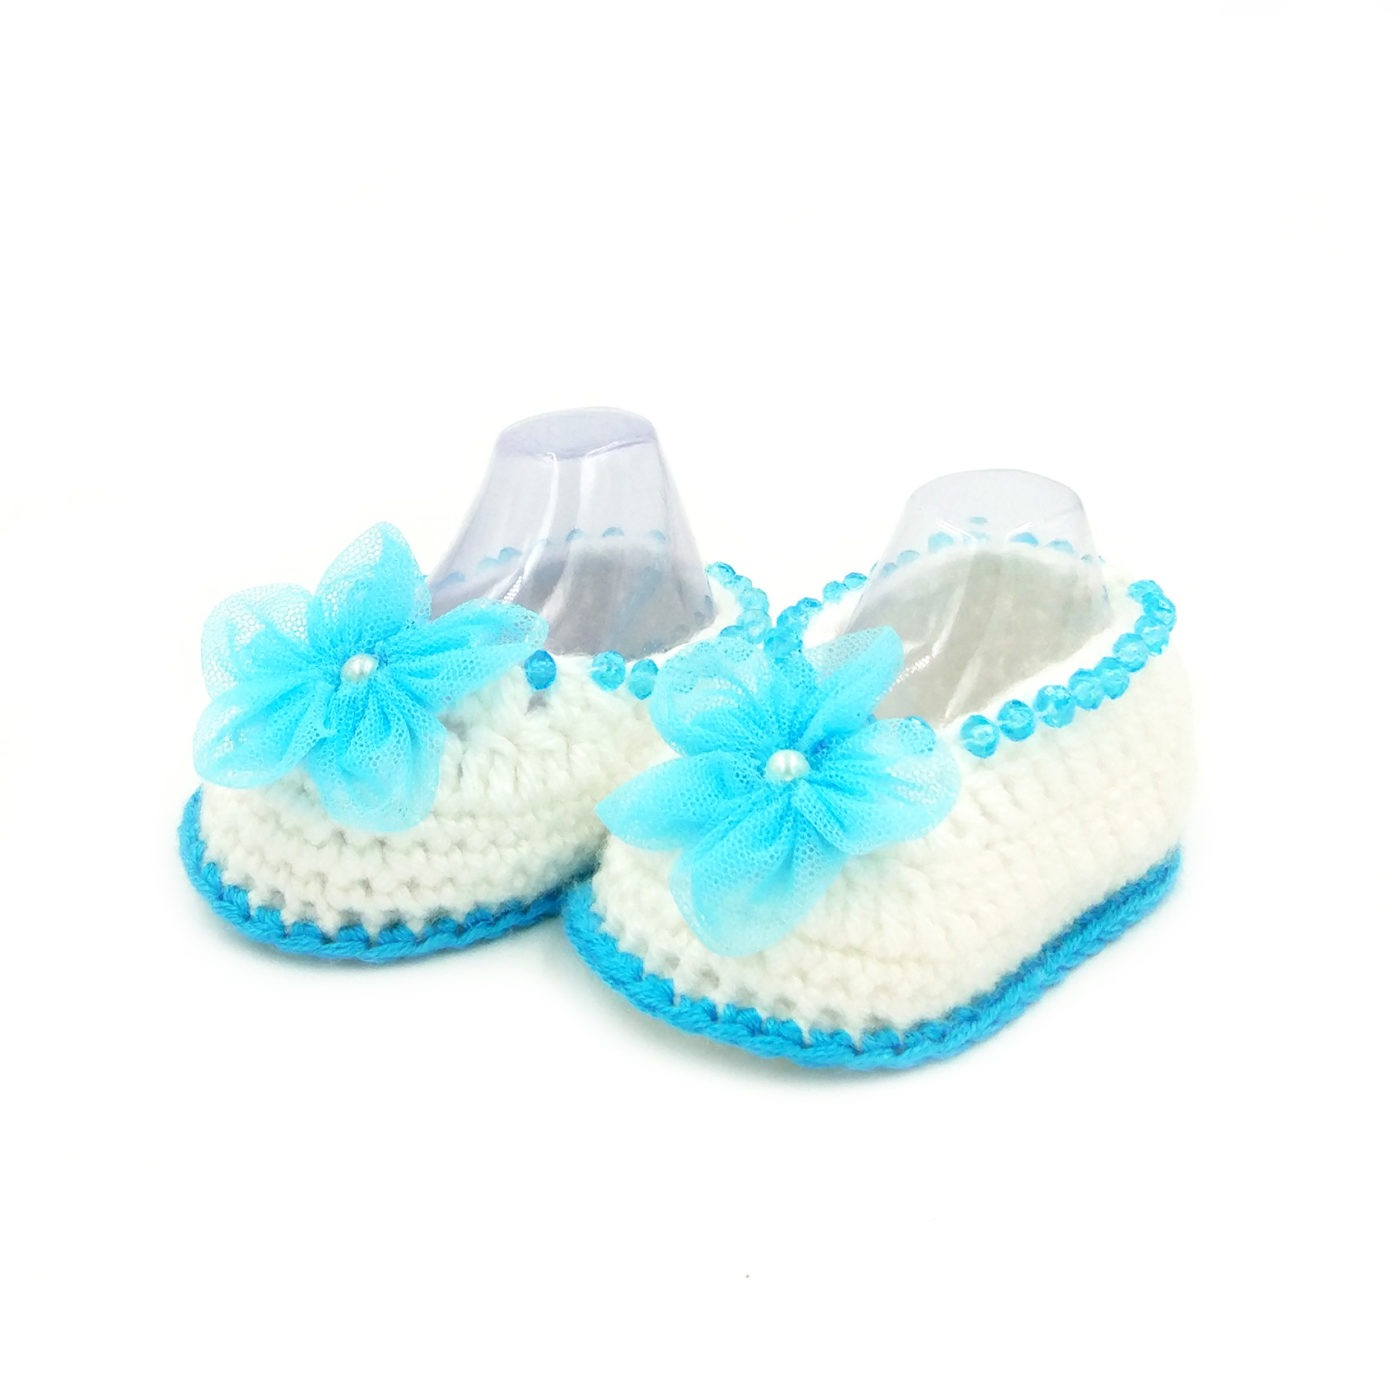 Infant Boots with Pearls Flowers White & Blue • Magic Needles